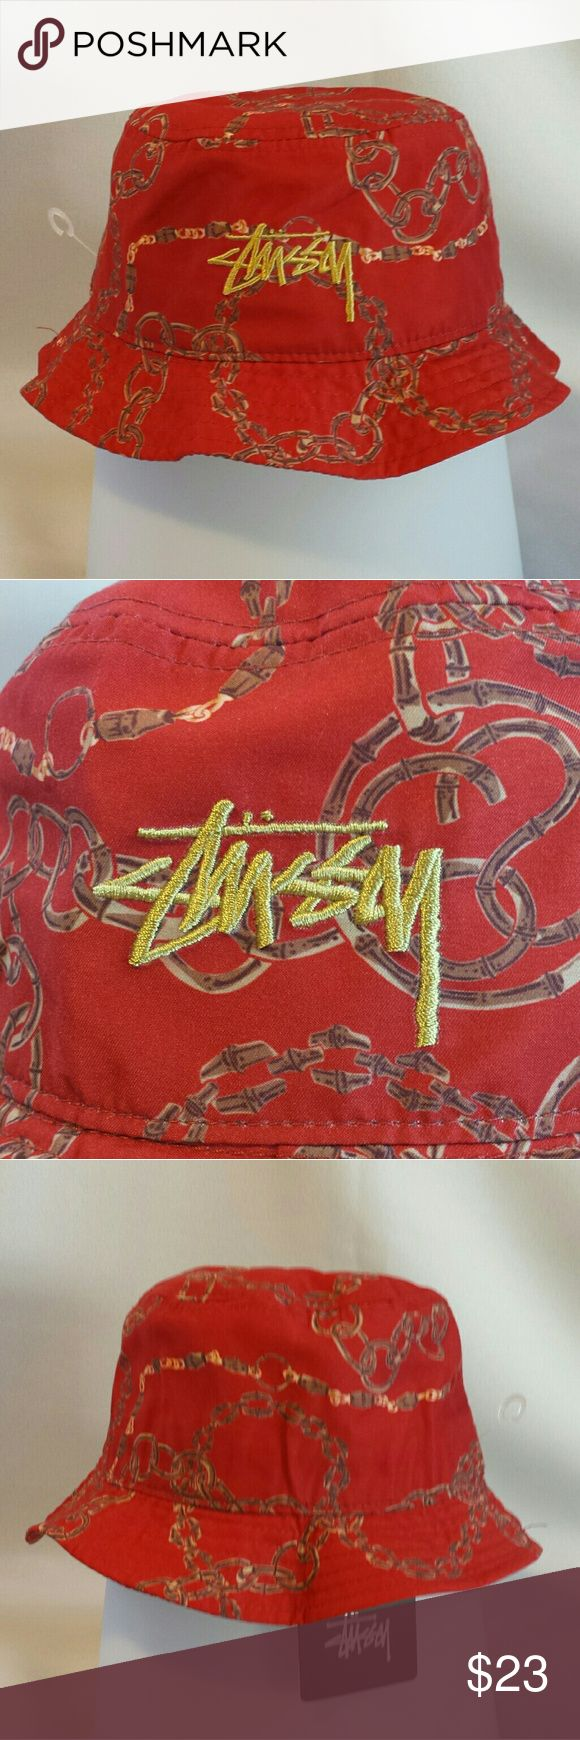 Stussy bucket hat Stussy Bambooze bucket hat. Embroidered gold logo on front. 100% polyester. Just in time for Summer! Stussy Accessories Hats